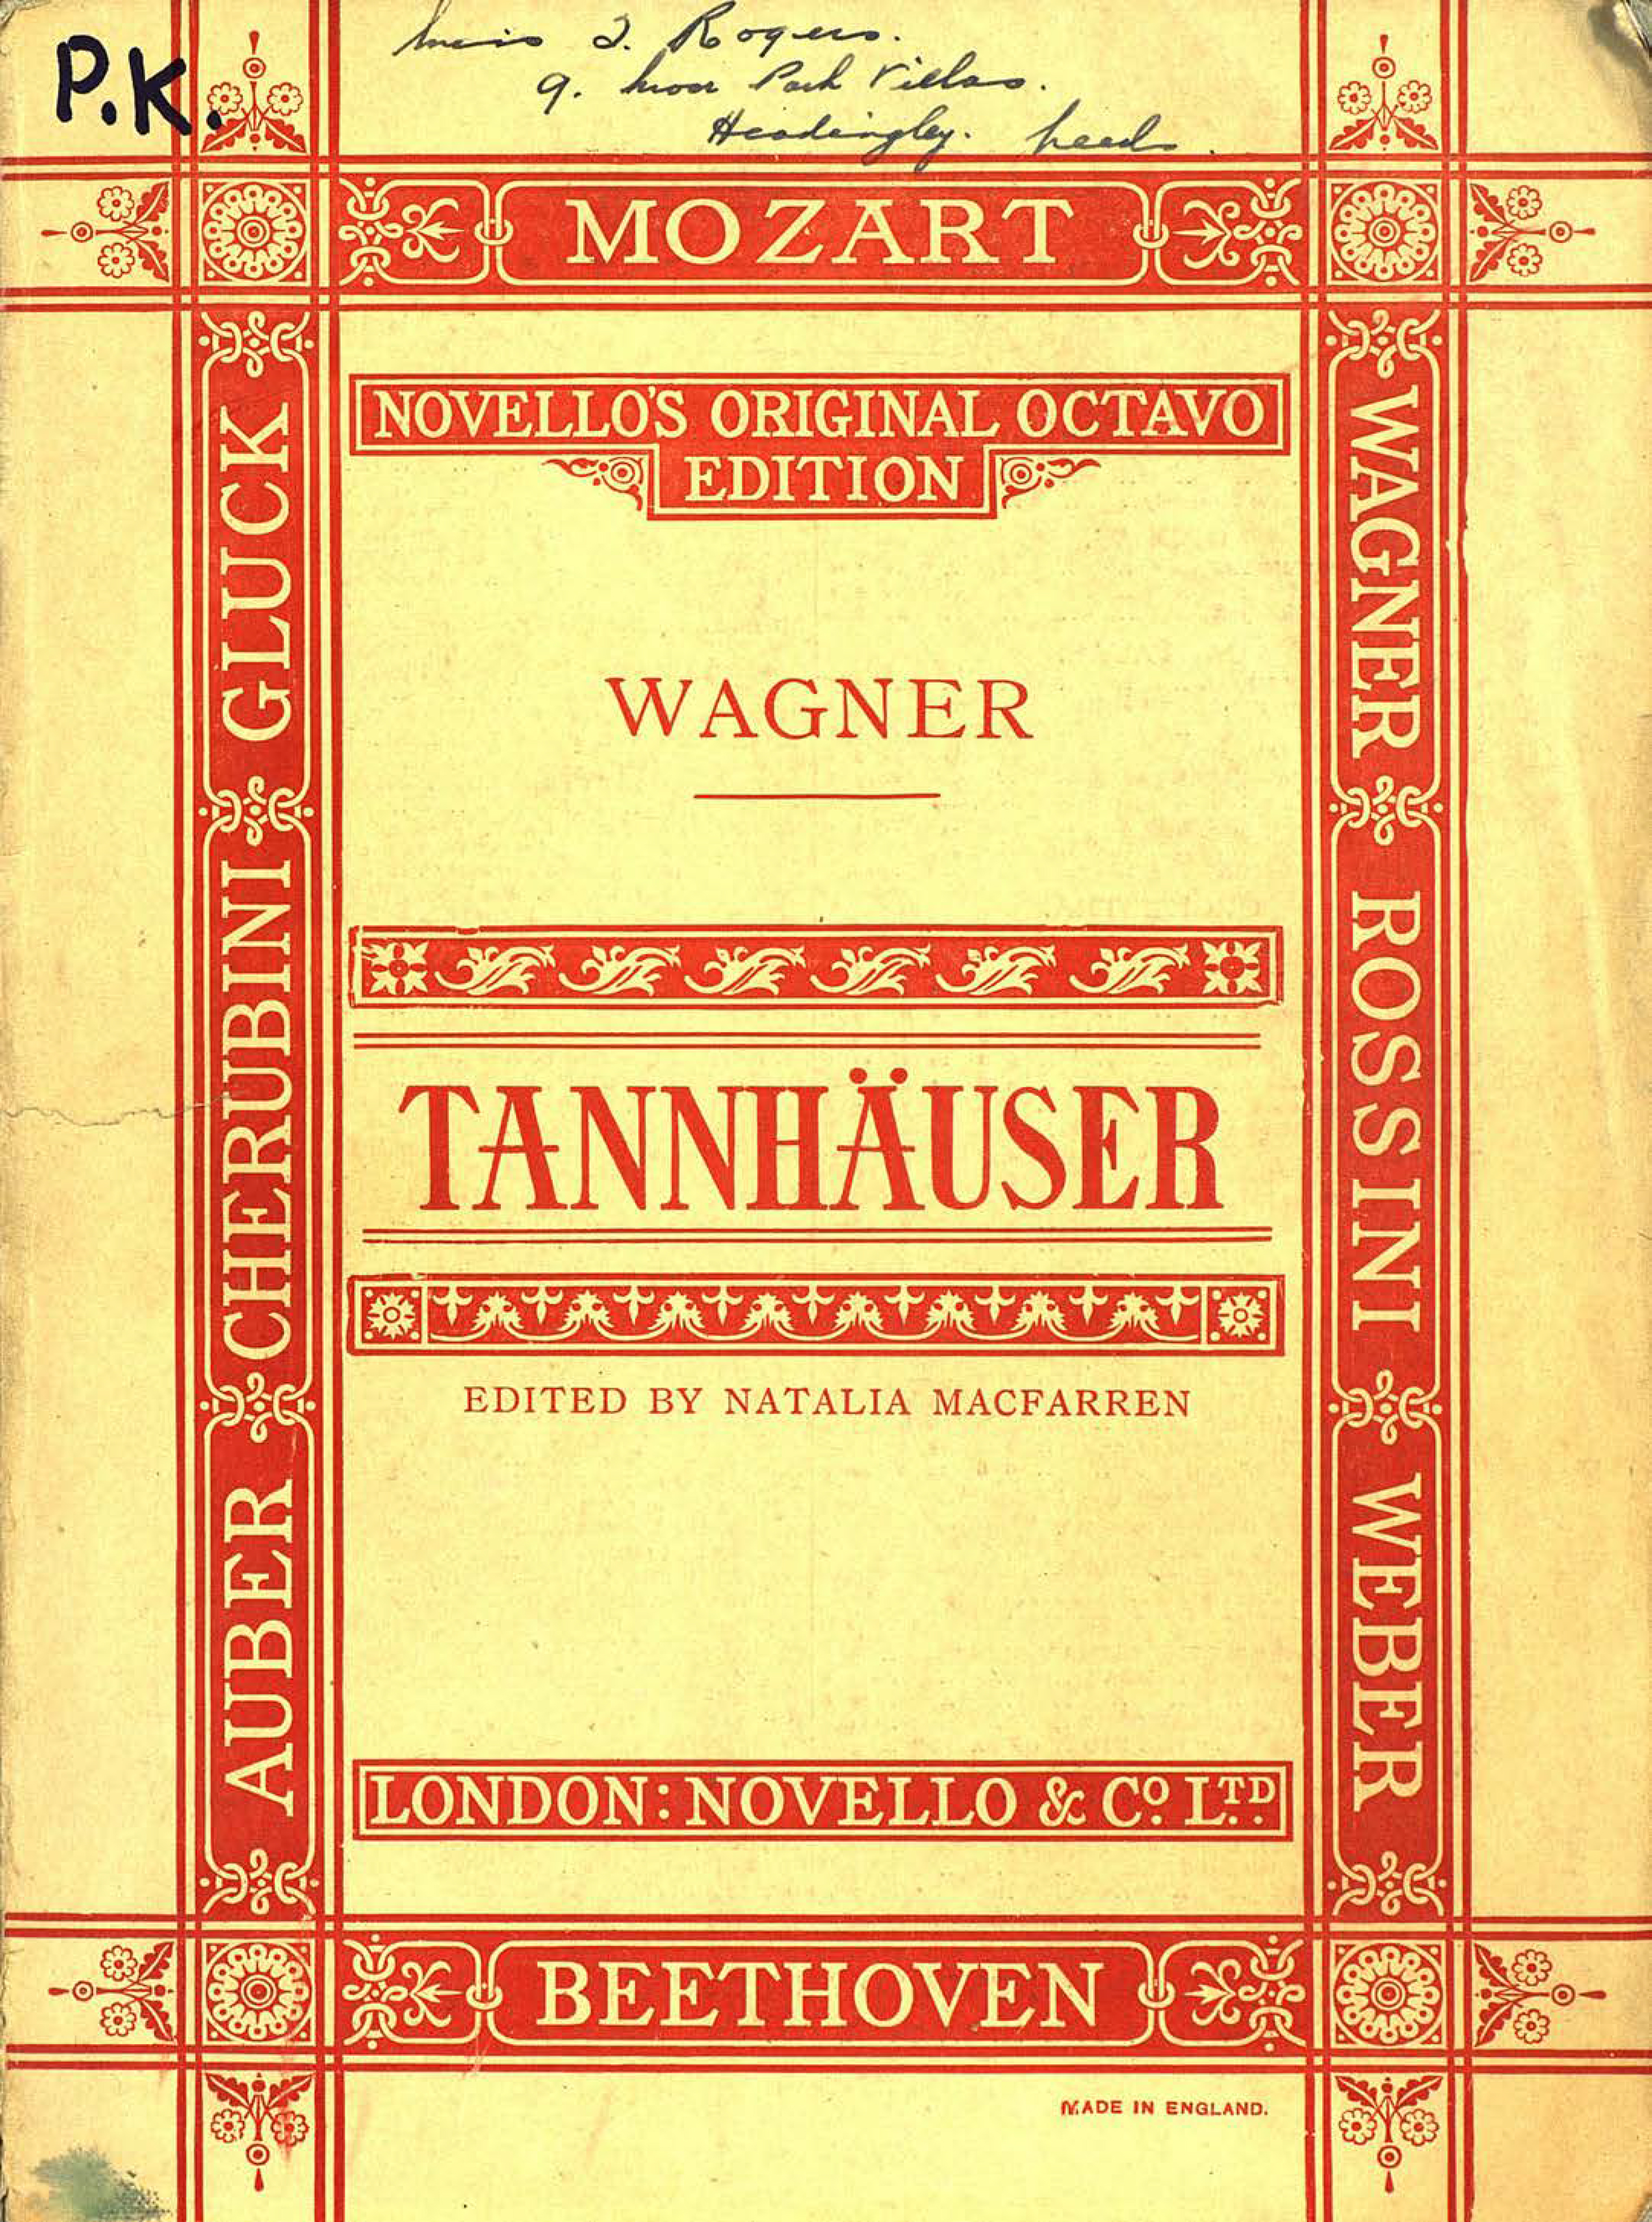 Рихард Вагнер Tannhauser and the tournament of song at wartburg